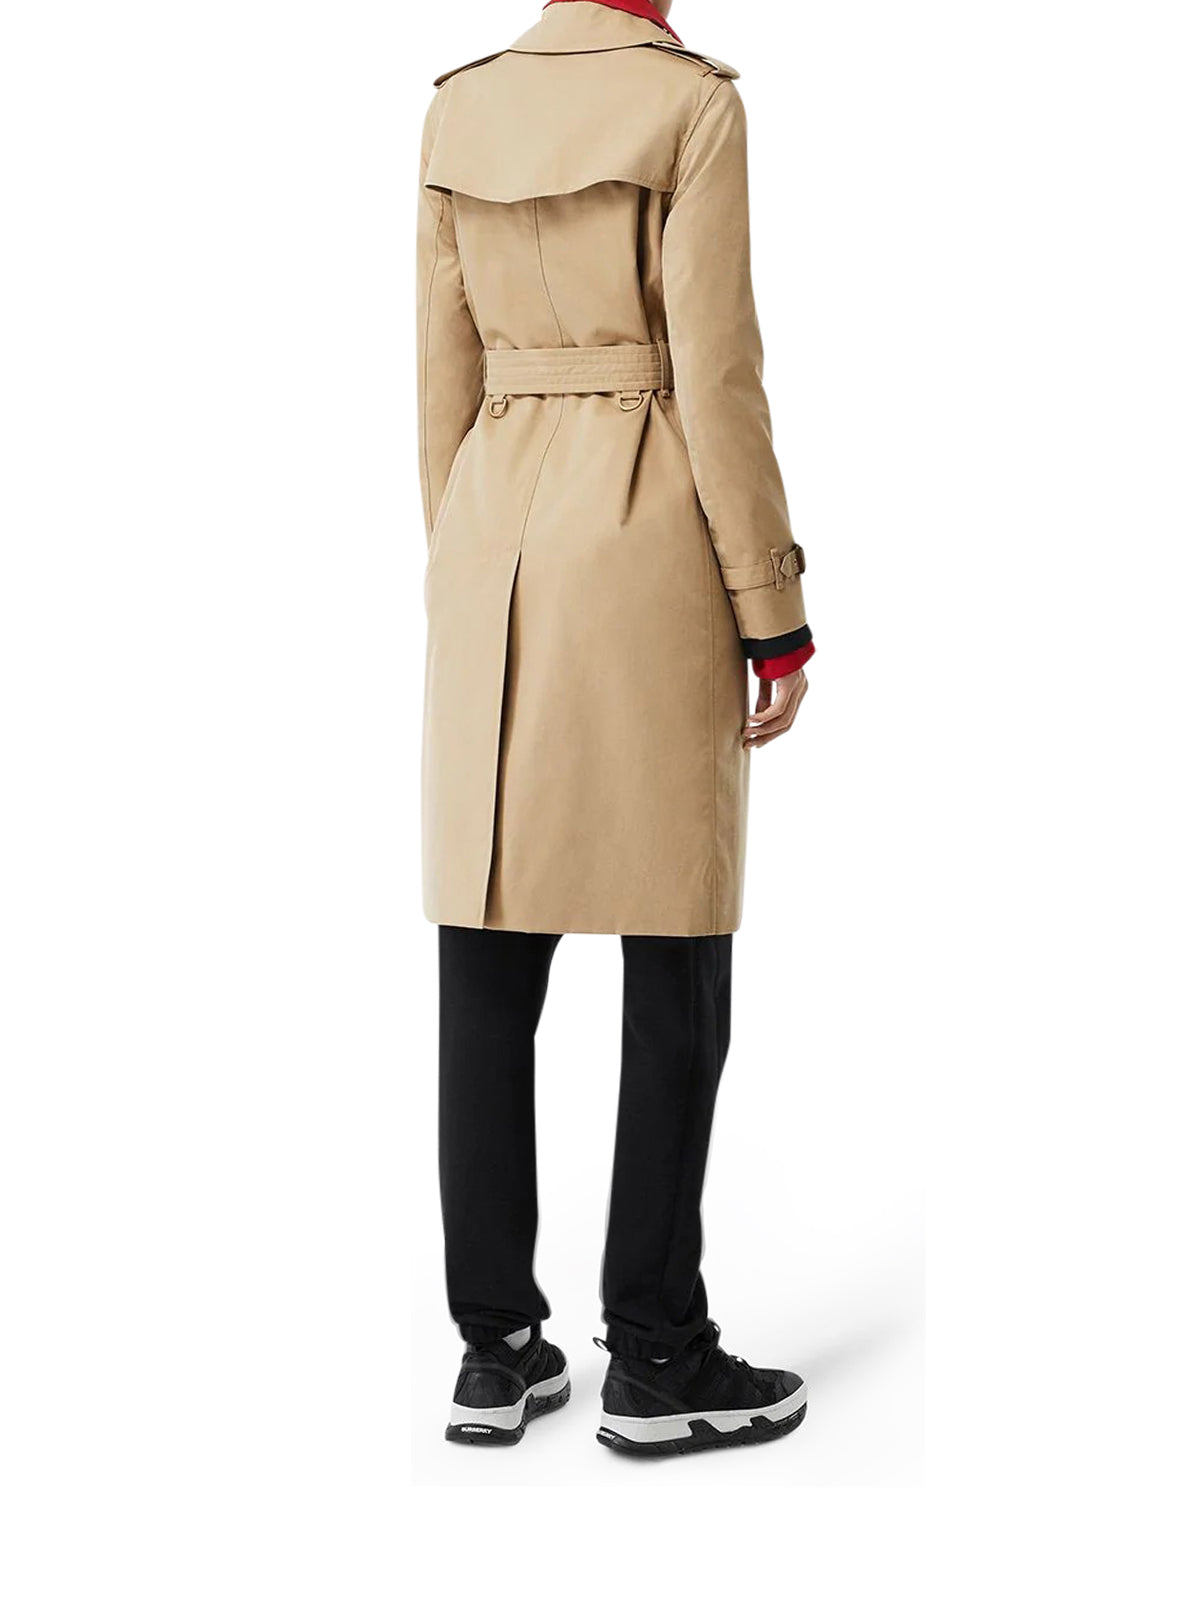 Kensignton Heritage double-breasted trench coat